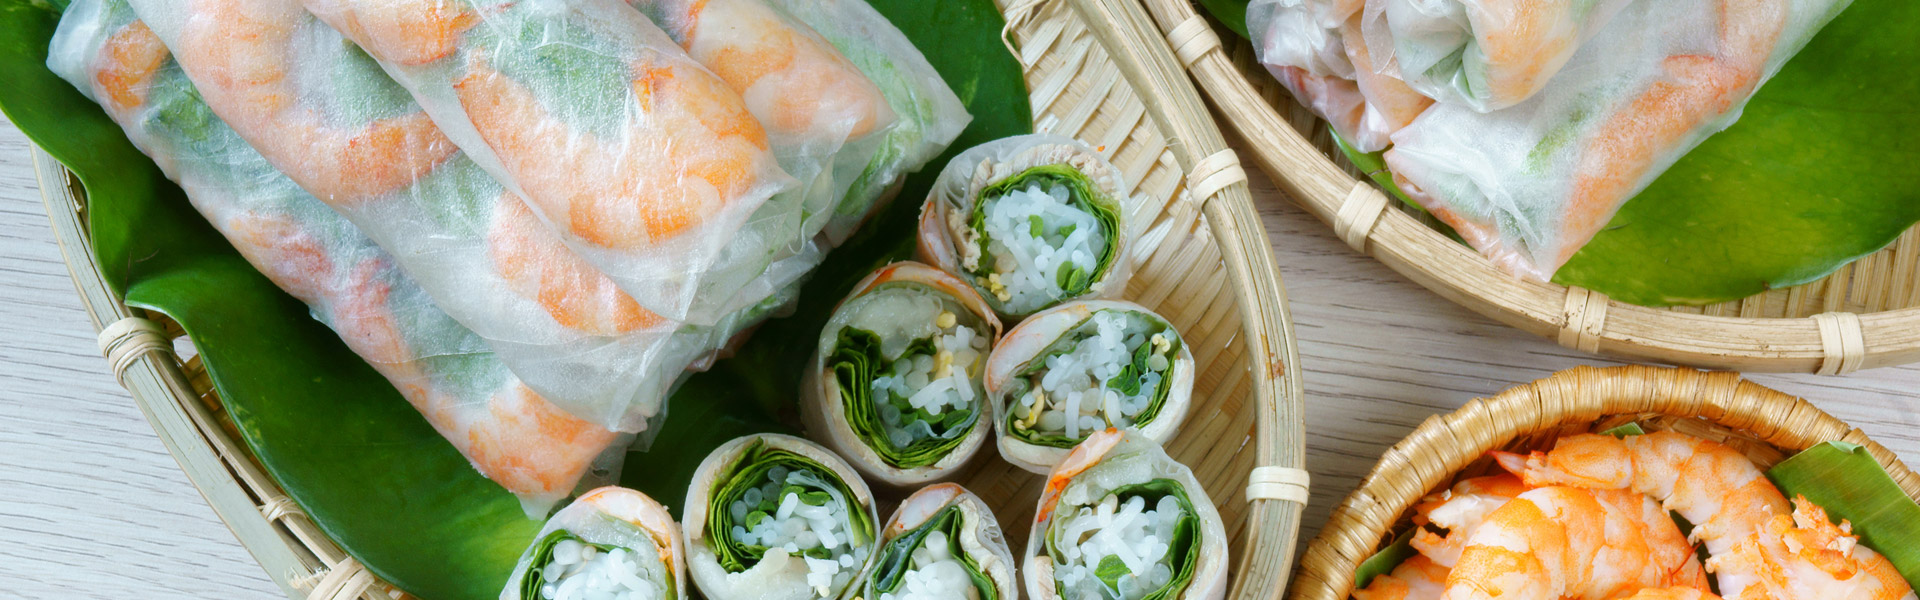 The Best Vietnam Dishes To Try | Wendy Wu Tours Blog